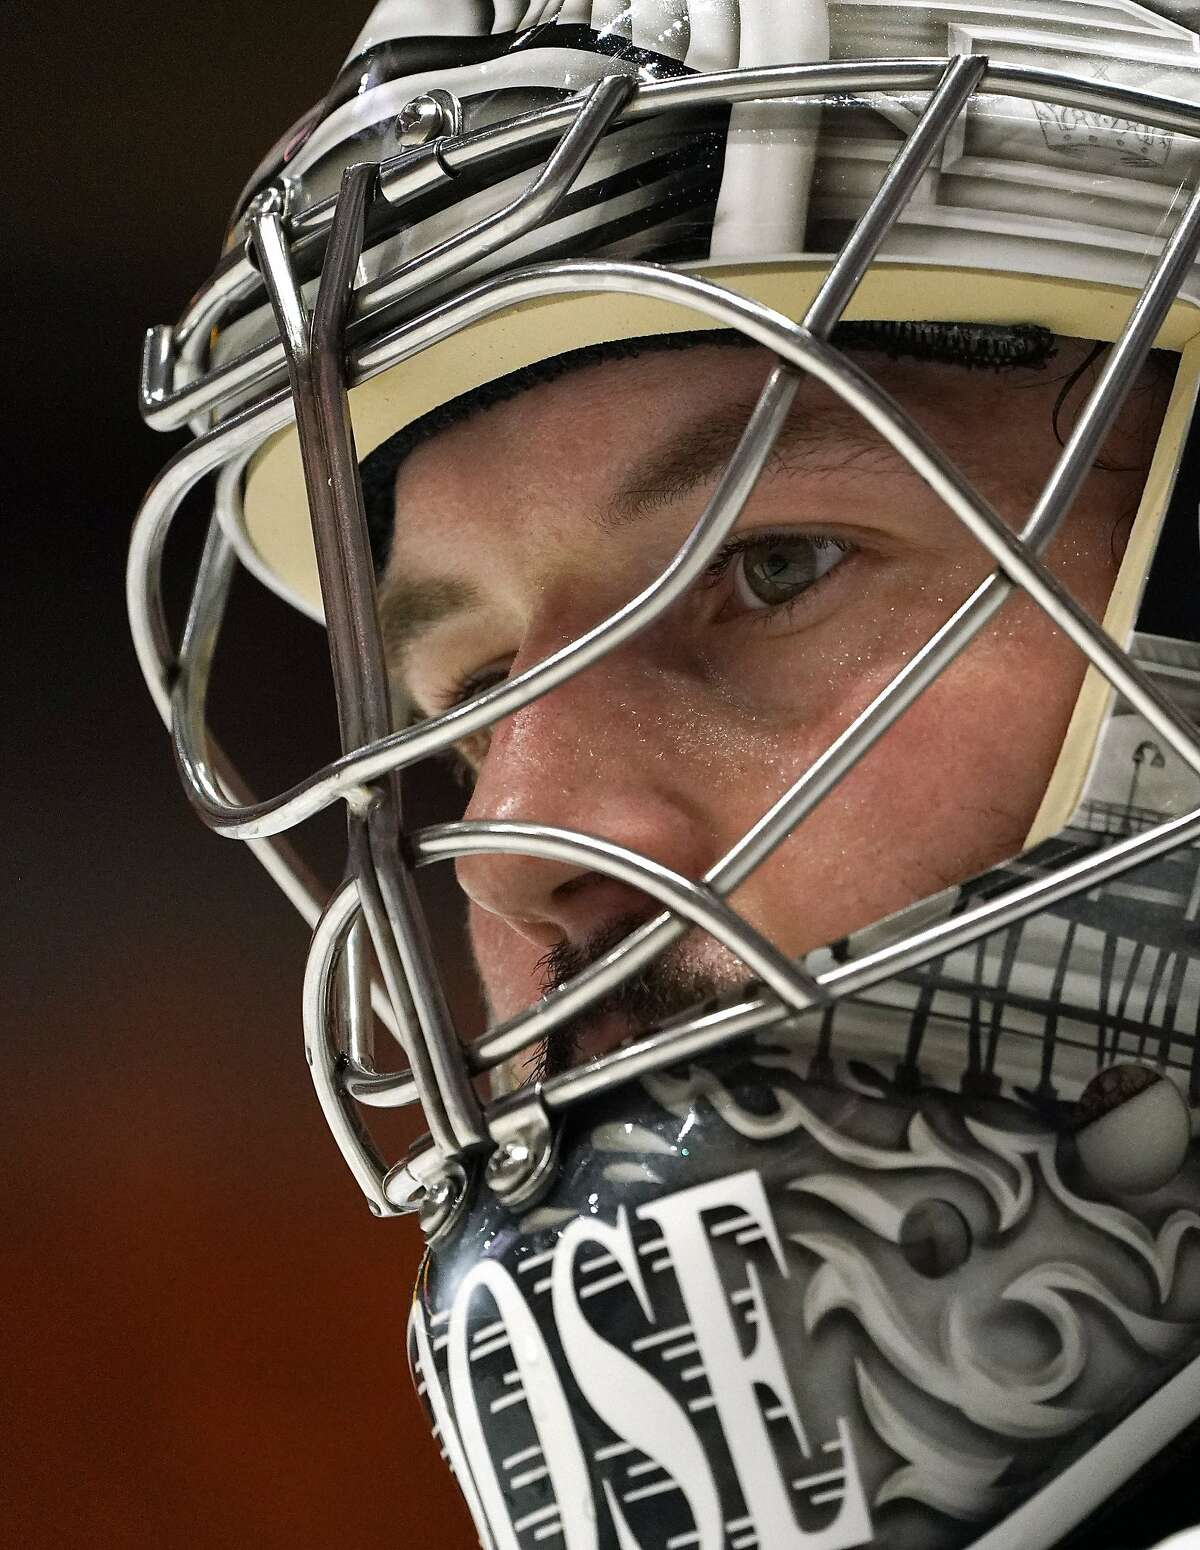 Los Angeles Kings goaltender Troy Grosenick stands in goal during the second period of an NHL hockey game against the Anaheim Ducks Wednesday, March 10, 2021, in Anaheim, Calif. (AP Photo/Mark J. Terrill)